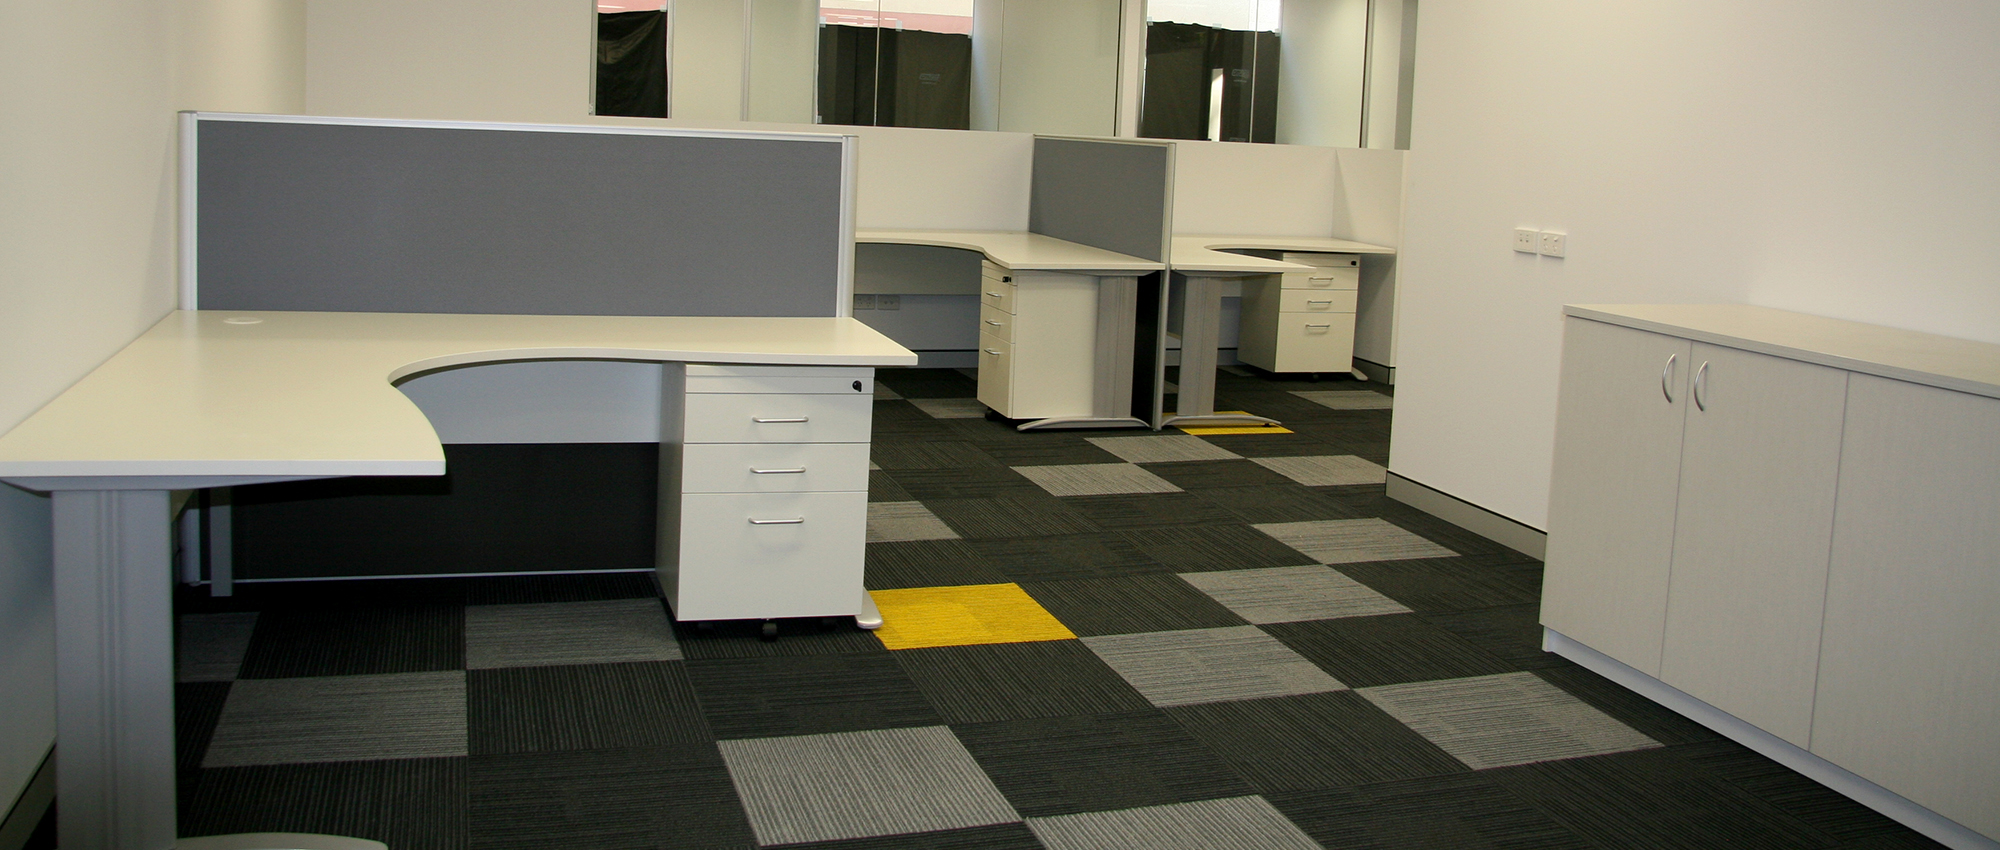 Office Plus Perth Furniture Fit Out fitout Office Design Workstation Credenza